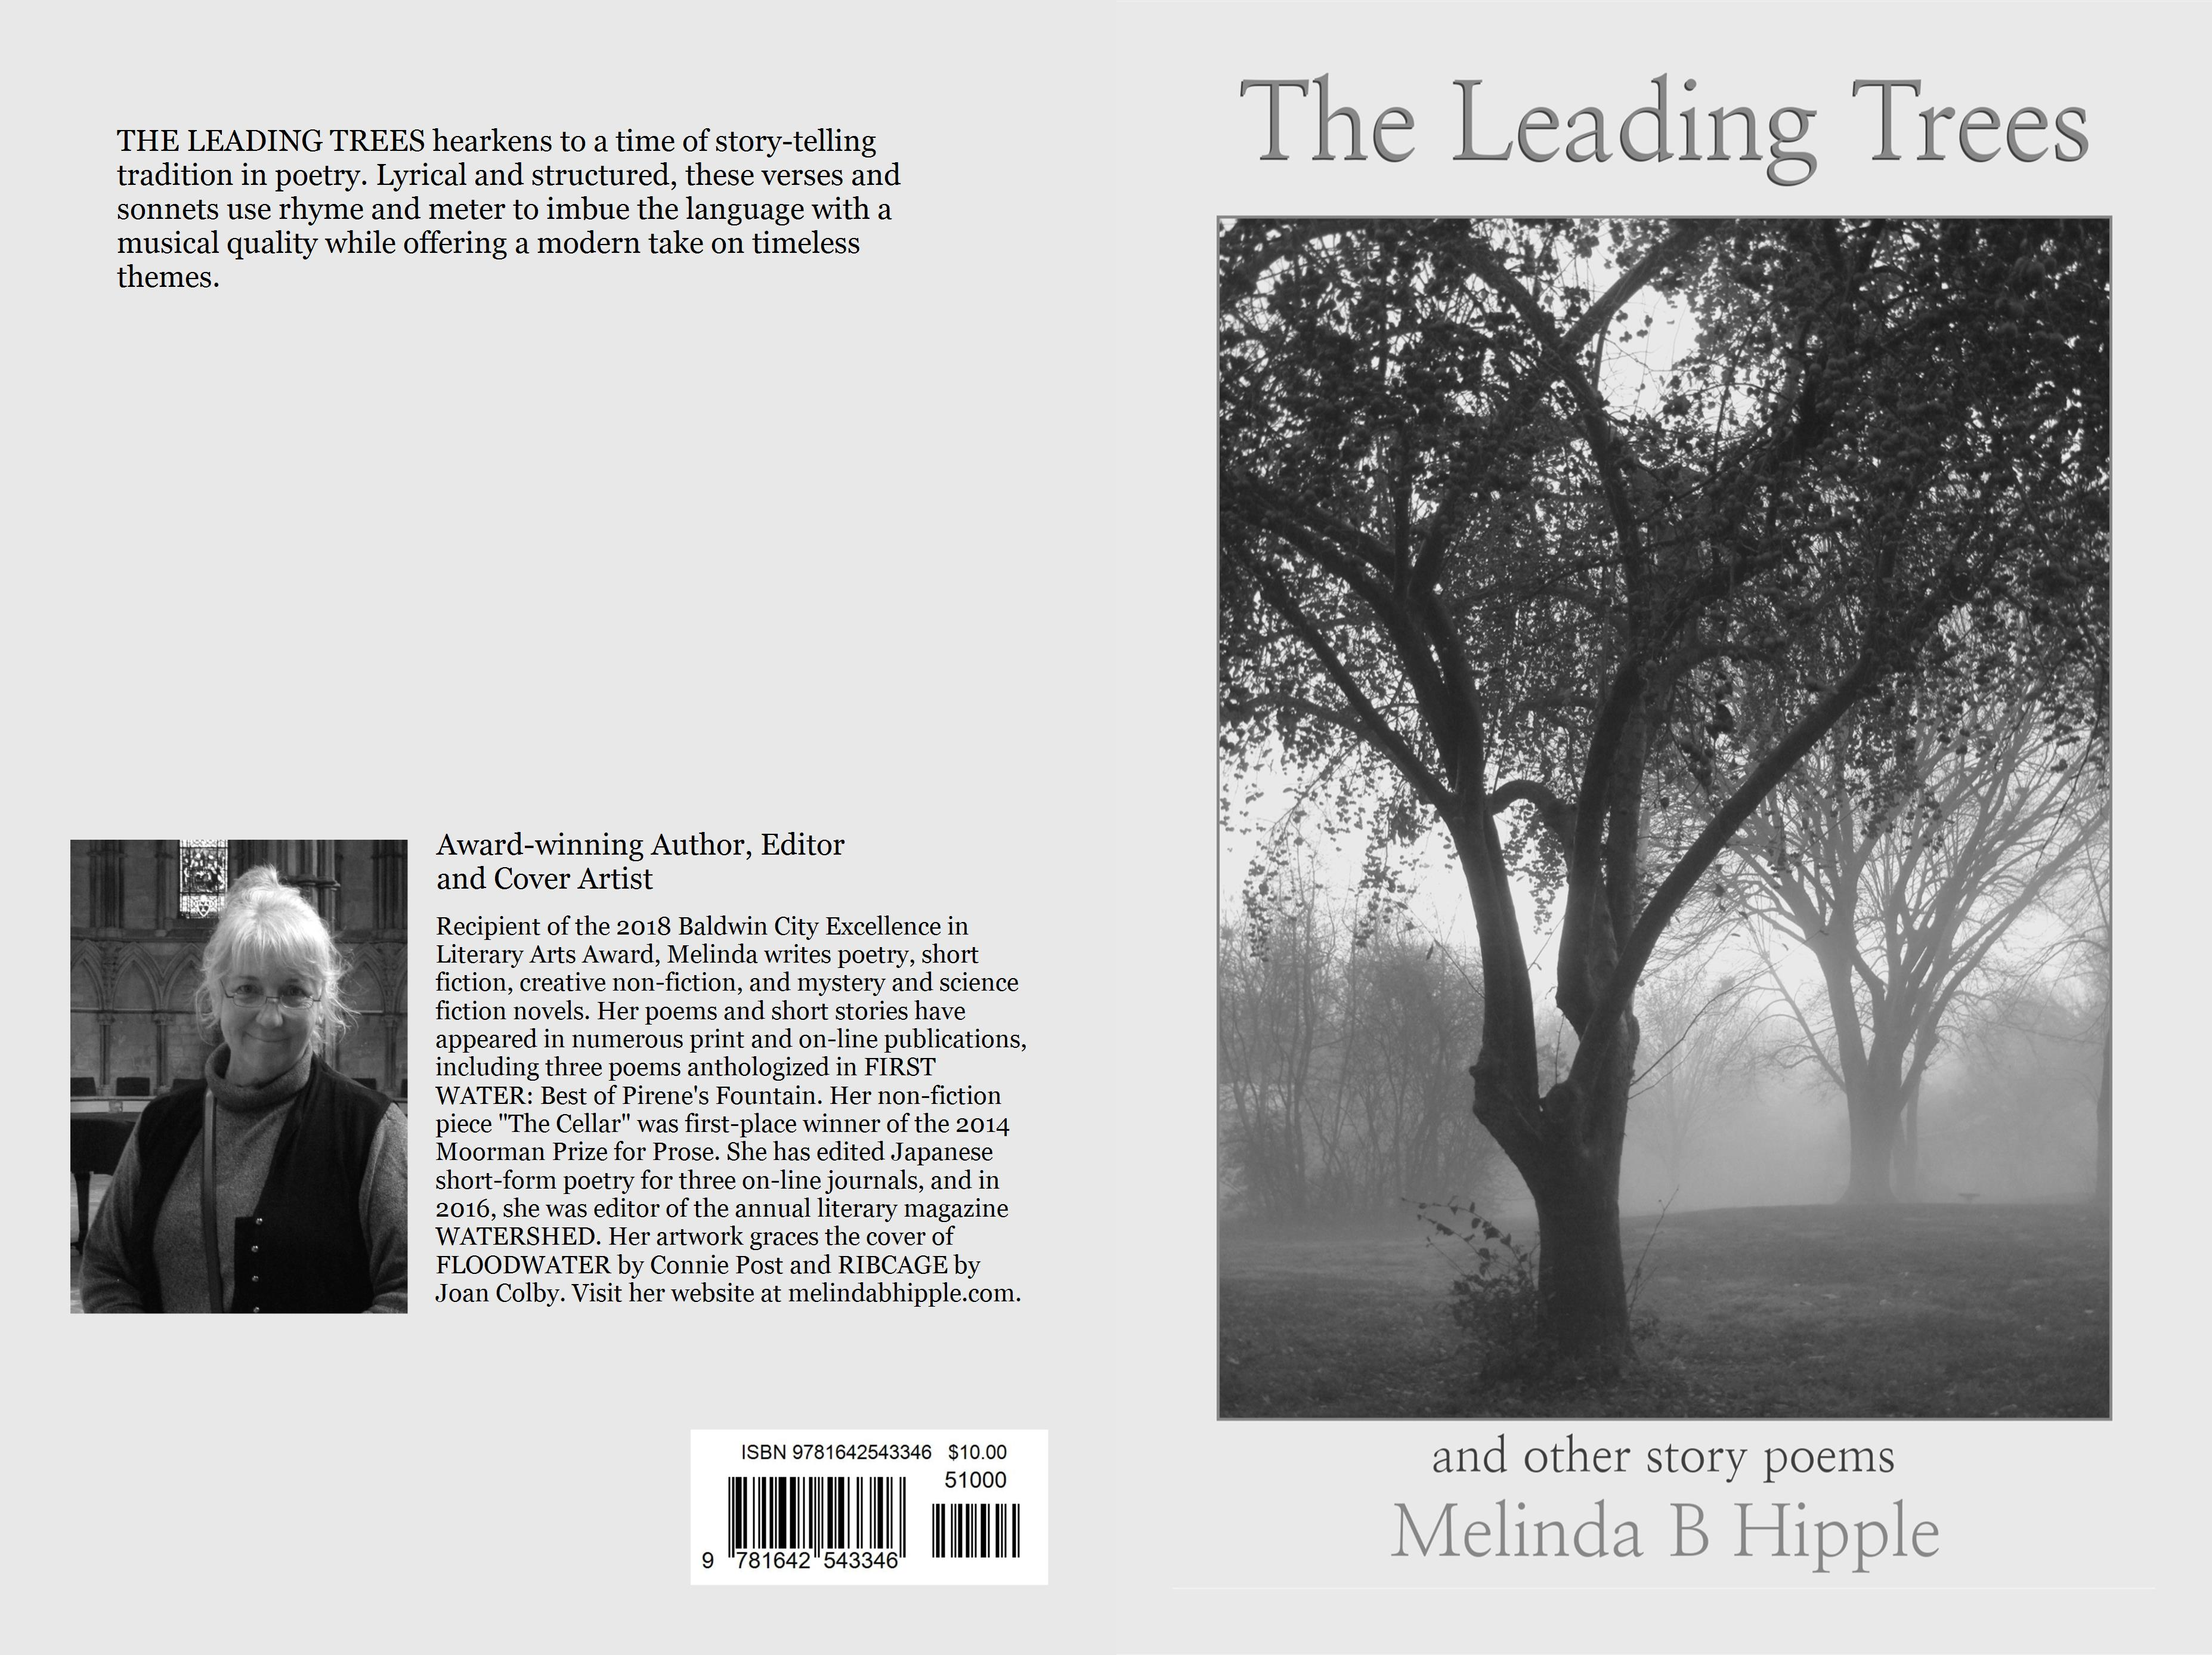 The Leading Trees cover image